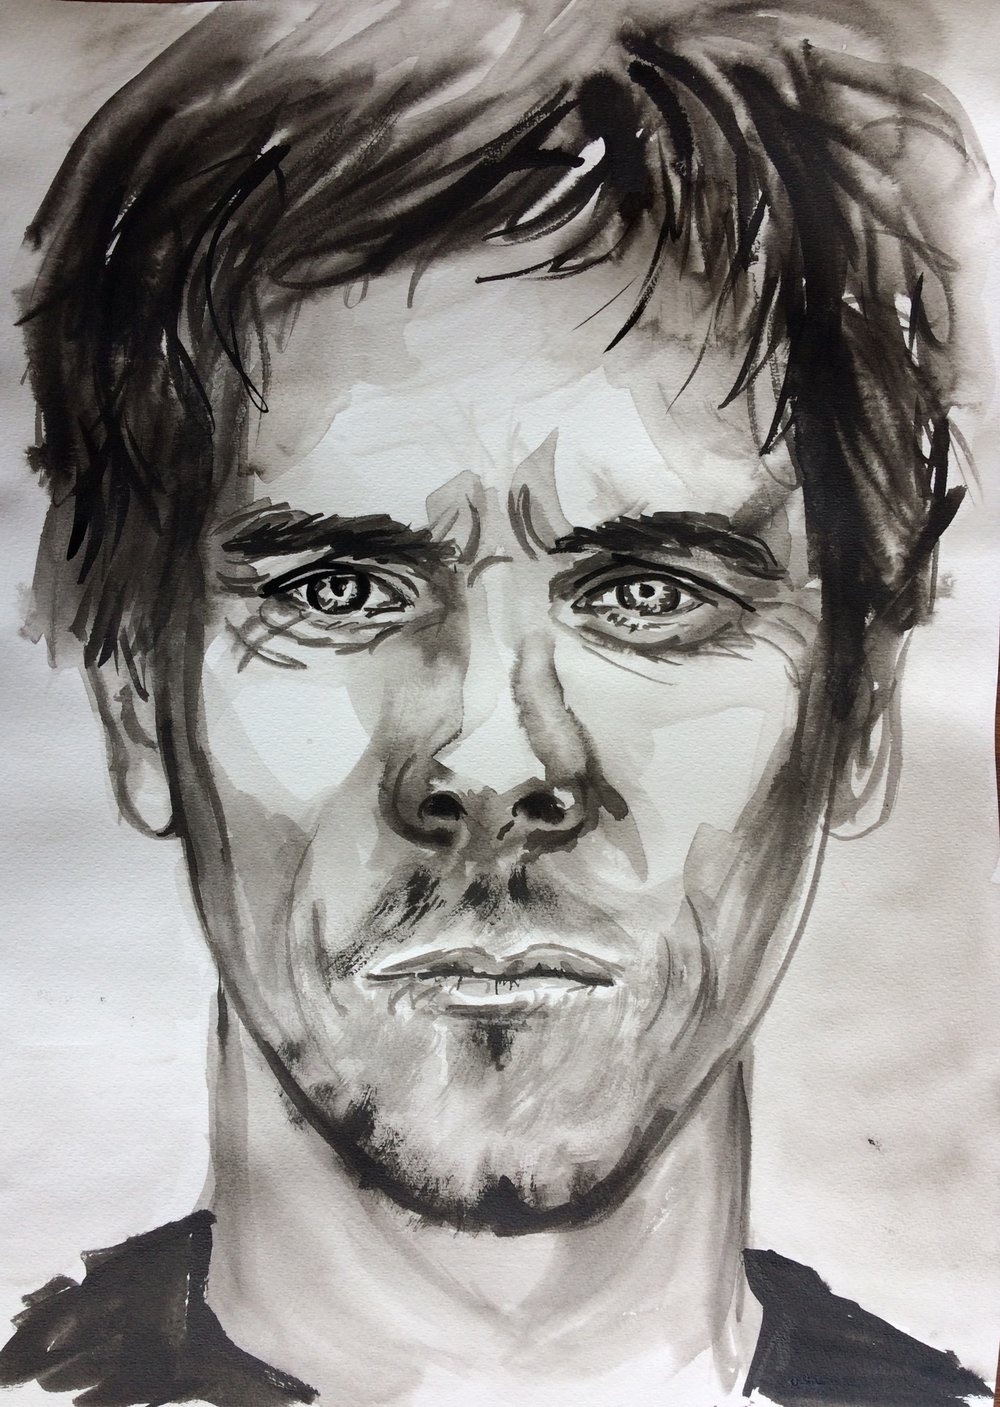 Kevin. Indian Ink on watercolor paper, (230g/m2), A3 (42x29,7 cm). Available.